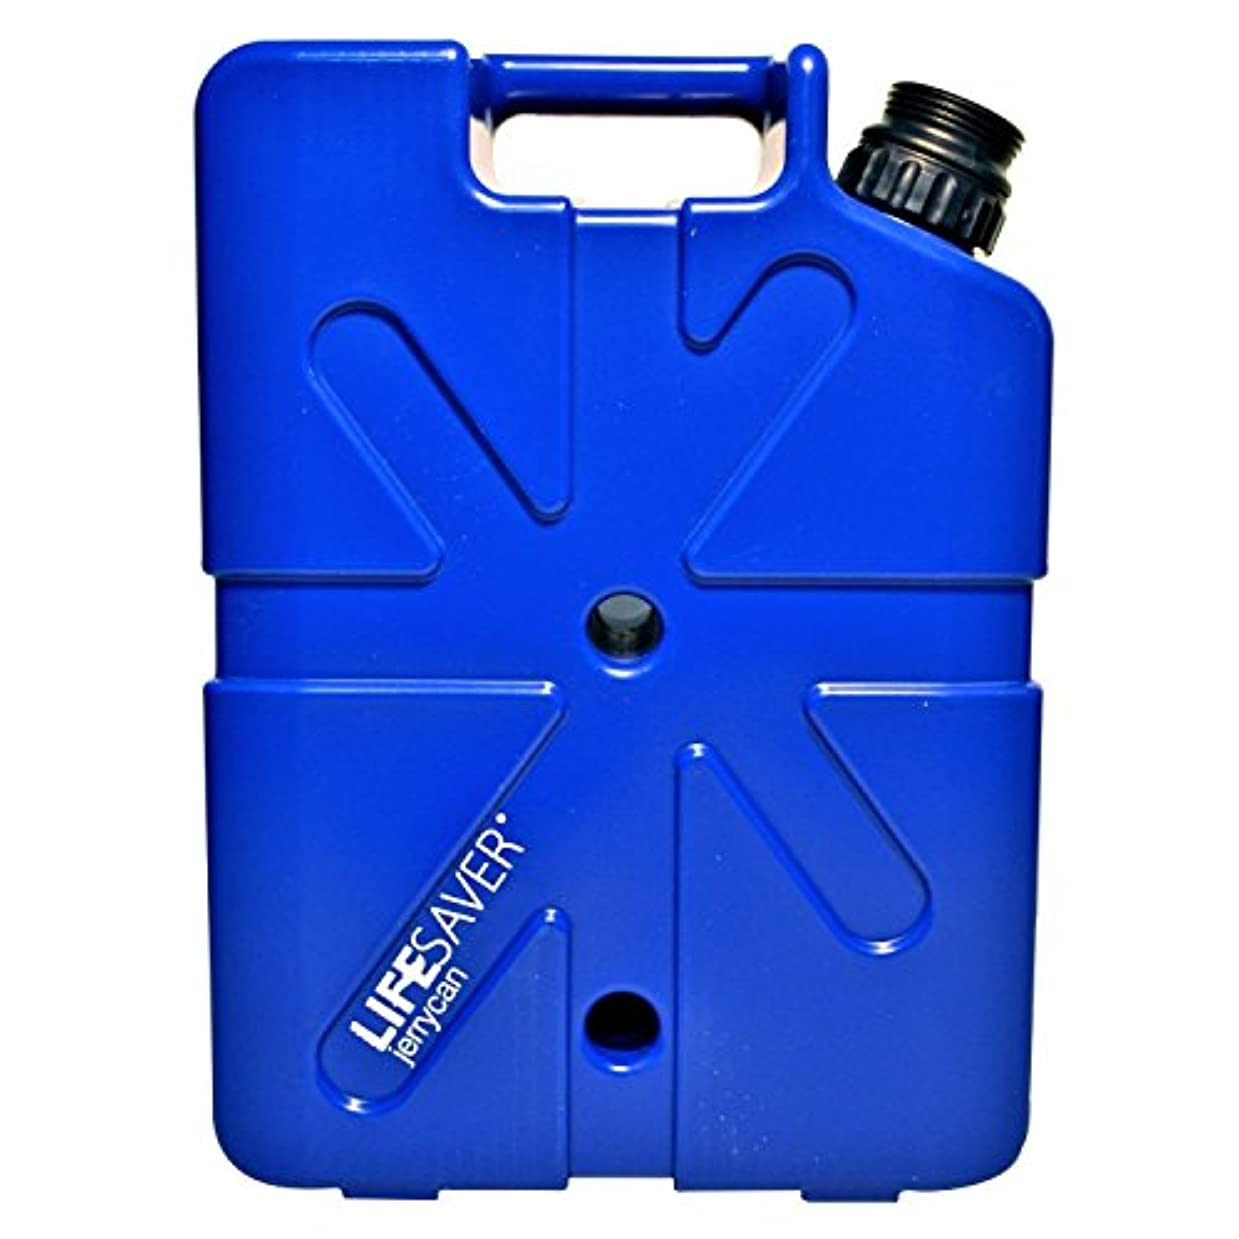 スクレーパーお風呂を持っているラベルLIFESAVER Expedition Jerrycan Water Filter (20,000UF) by Lifesaver